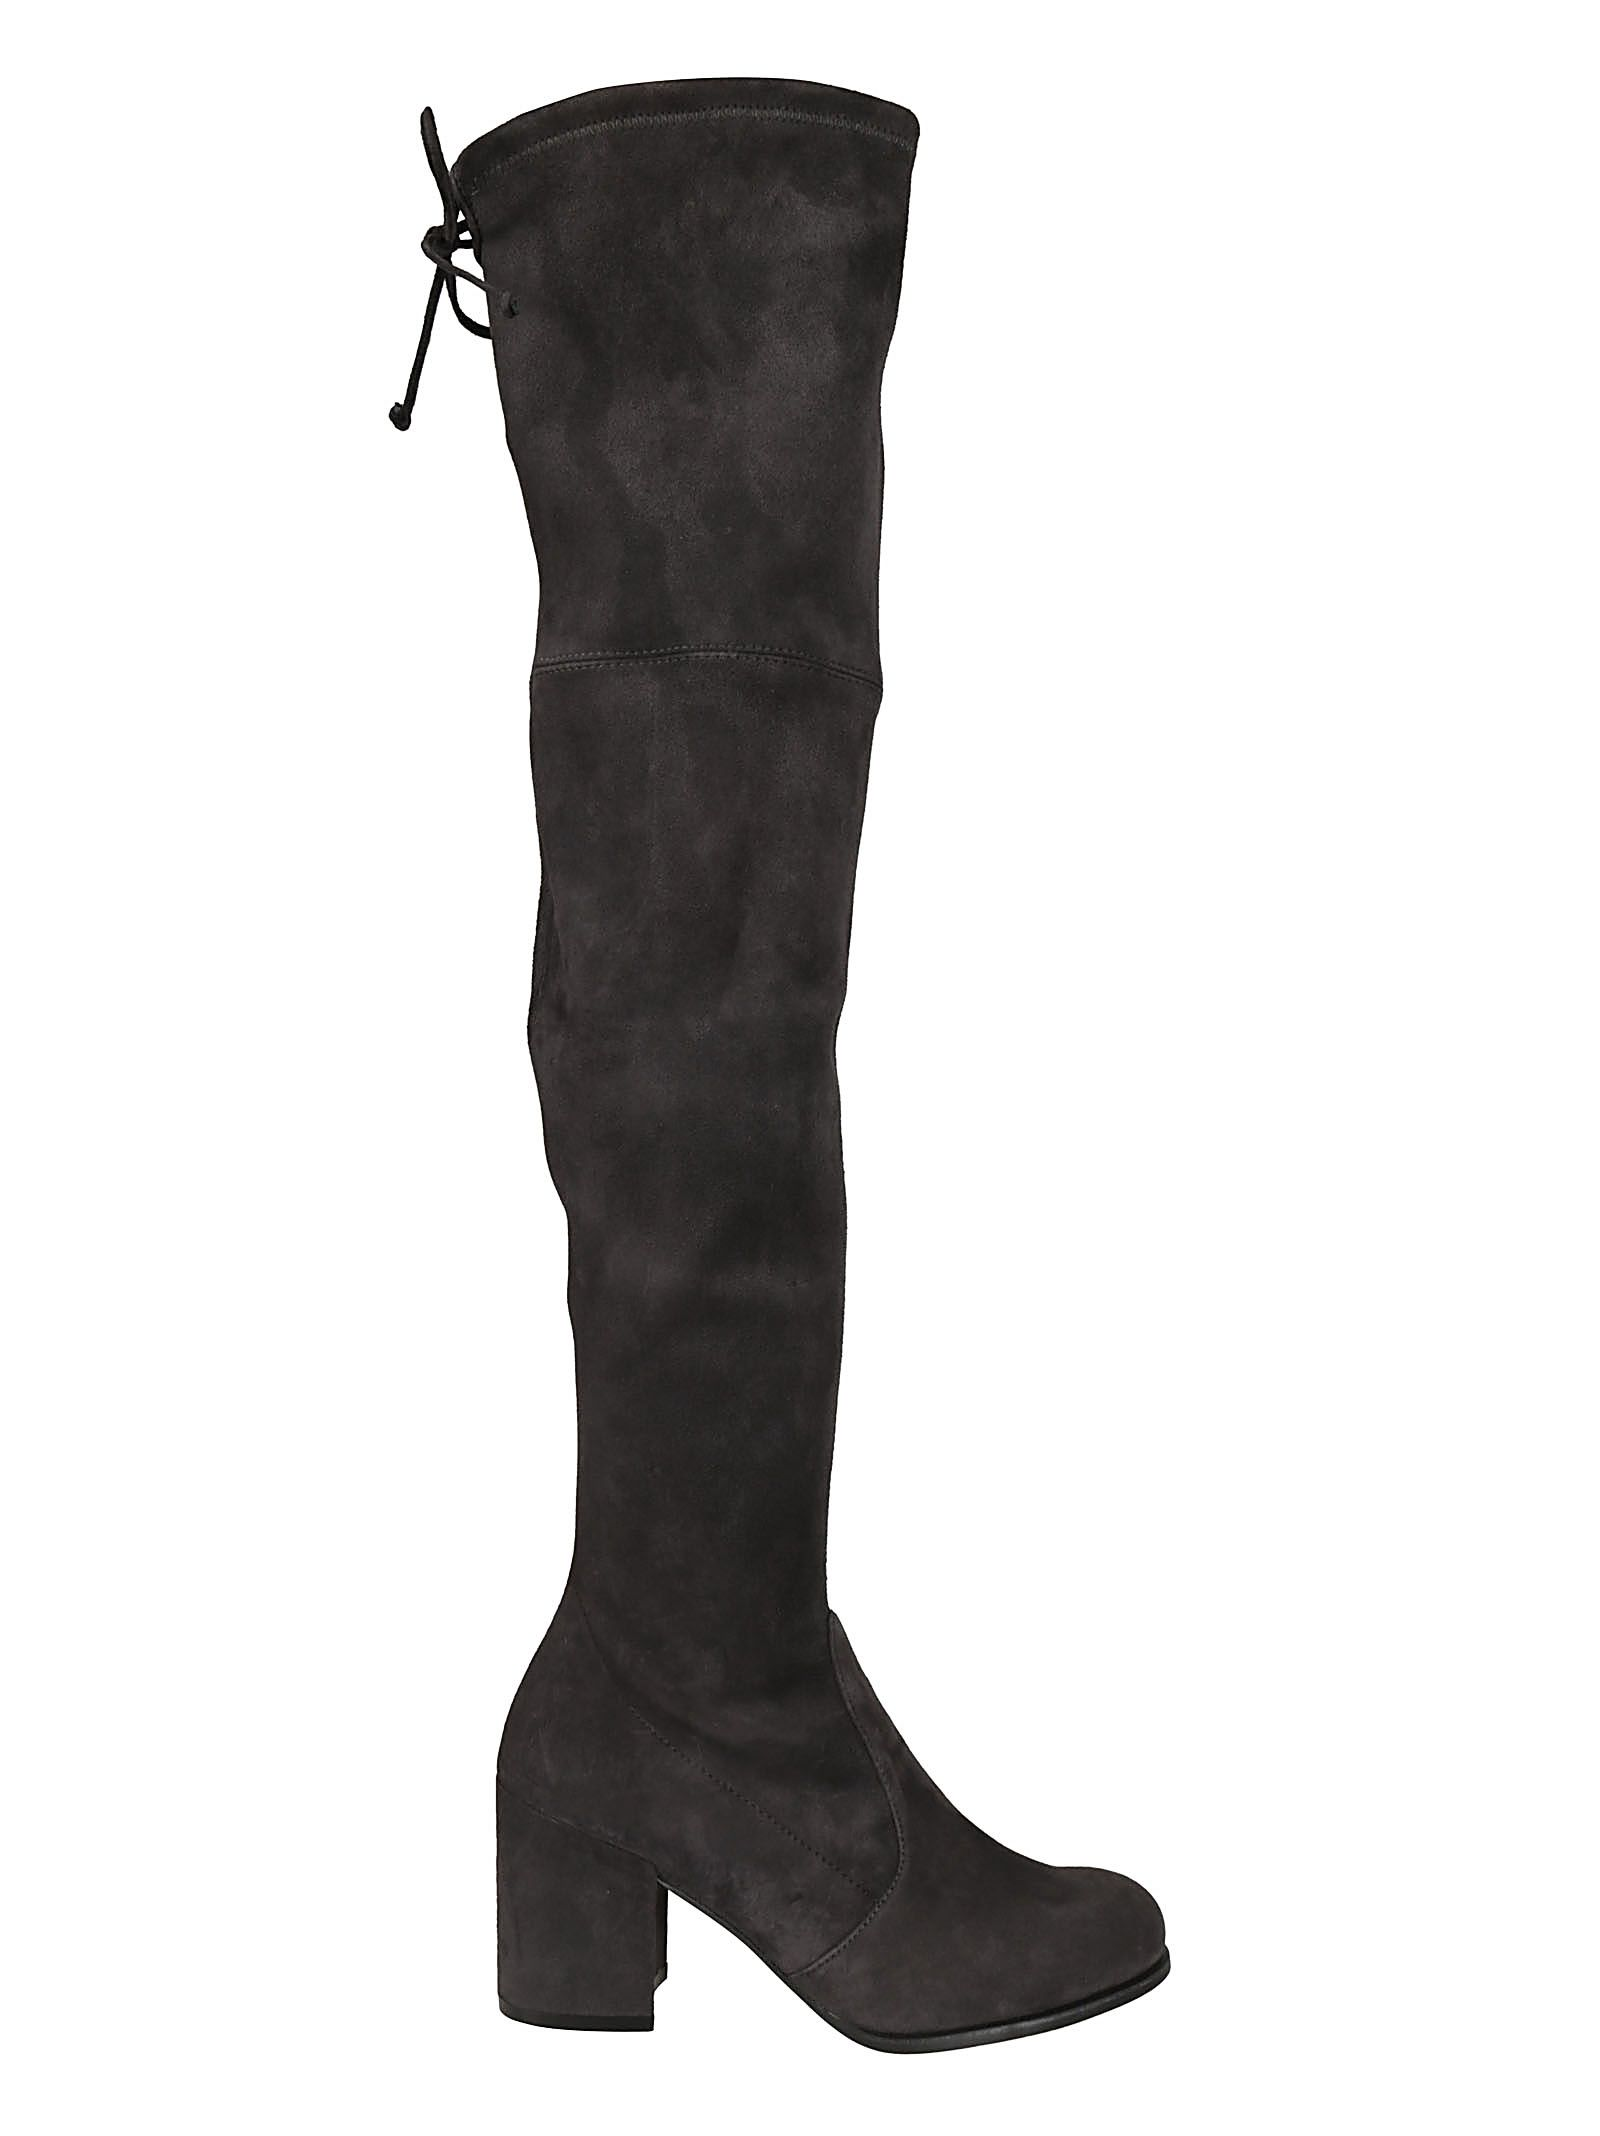 Tieland Over-The-Knee Boots in Antracite